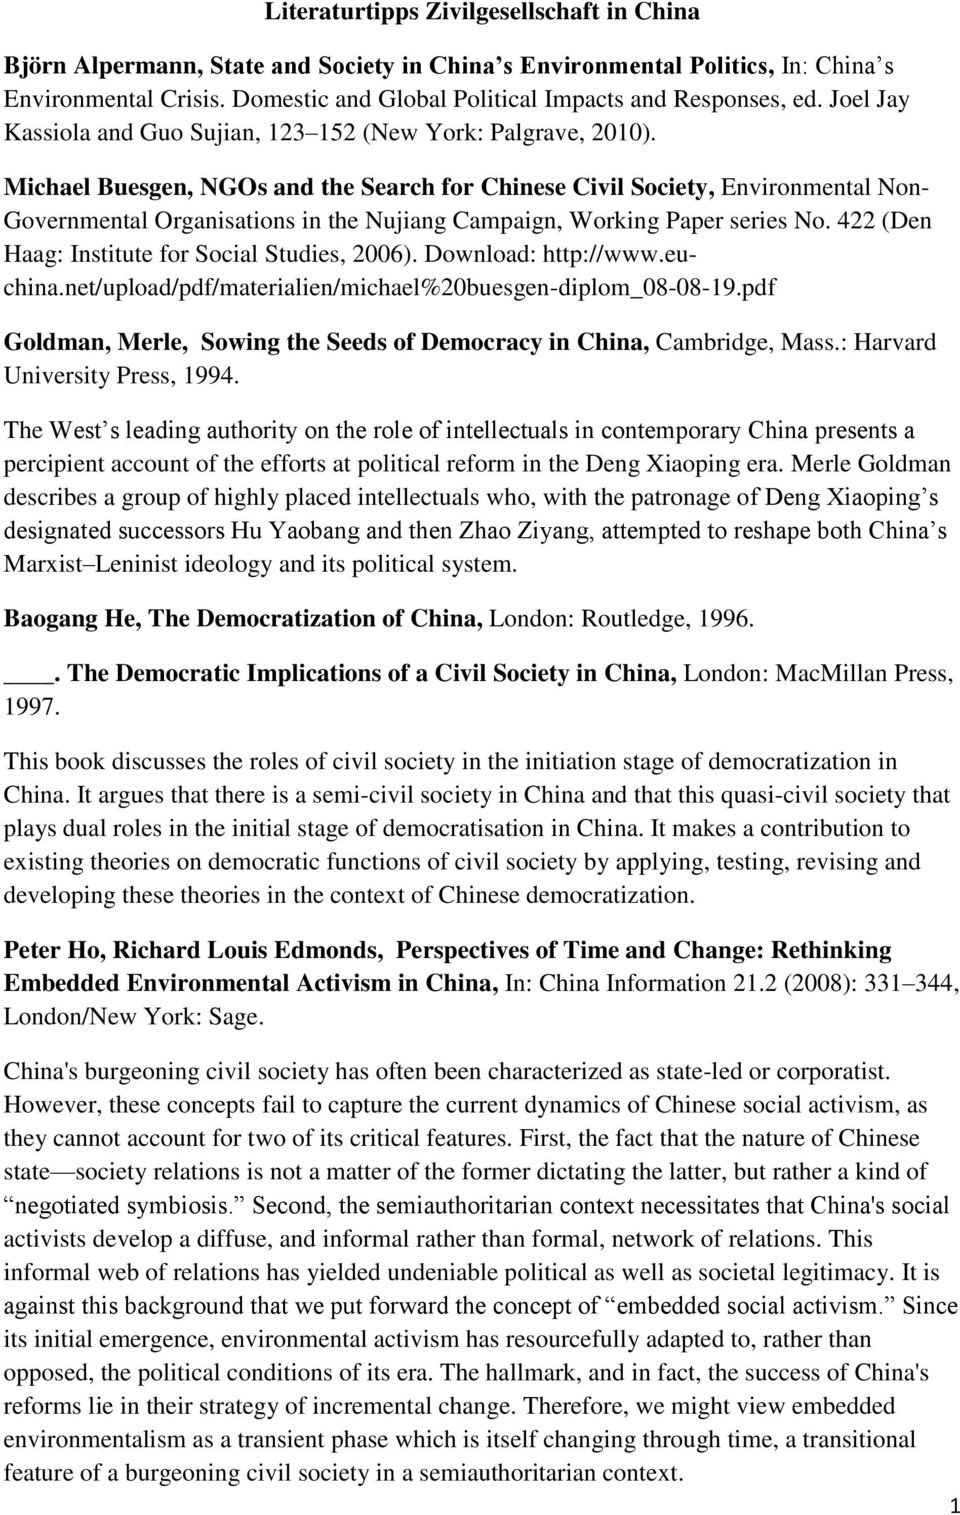 Michael Buesgen, NGOs and the Search for Chinese Civil Society, Environmental Non- Governmental Organisations in the Nujiang Campaign, Working Paper series No.